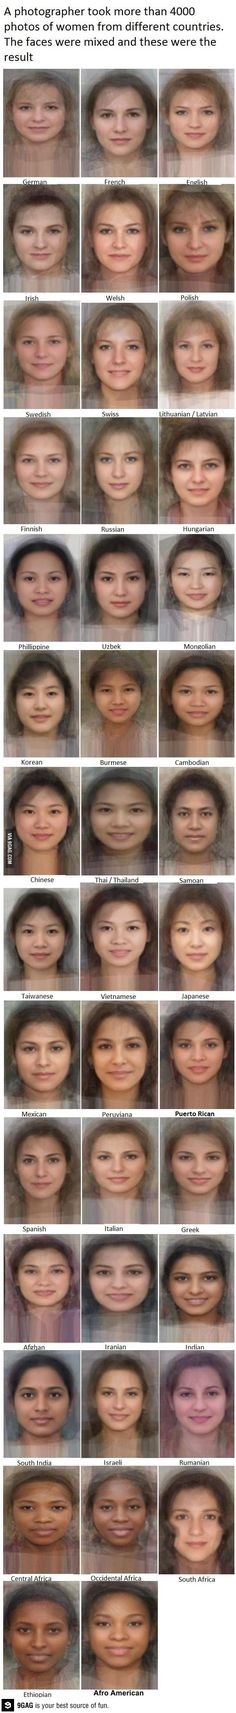 Average face from women from different countries. This is so cool!